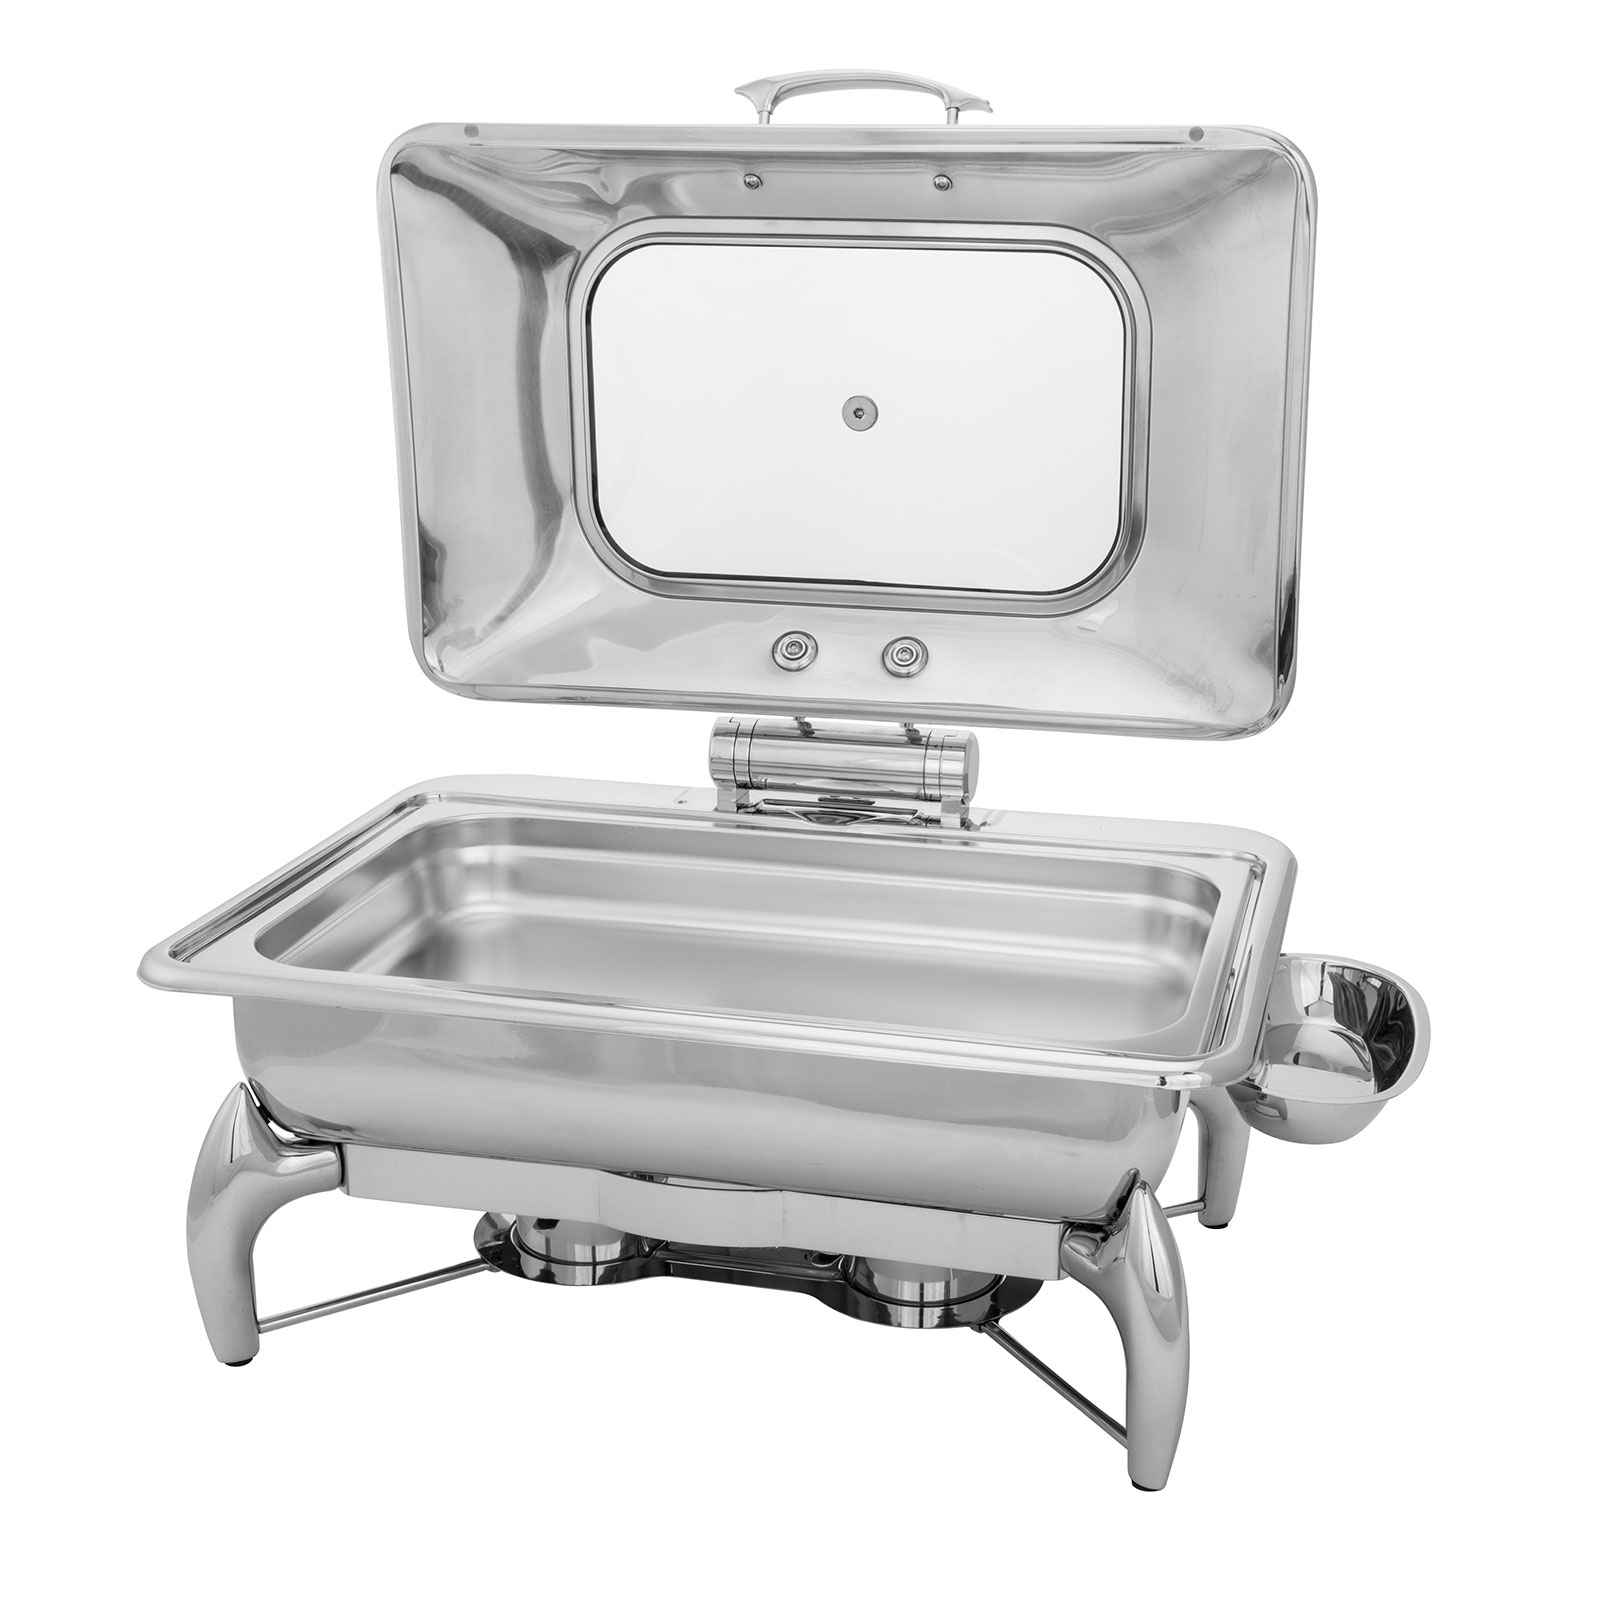 Walco Stainless WI9LGL chafing dish